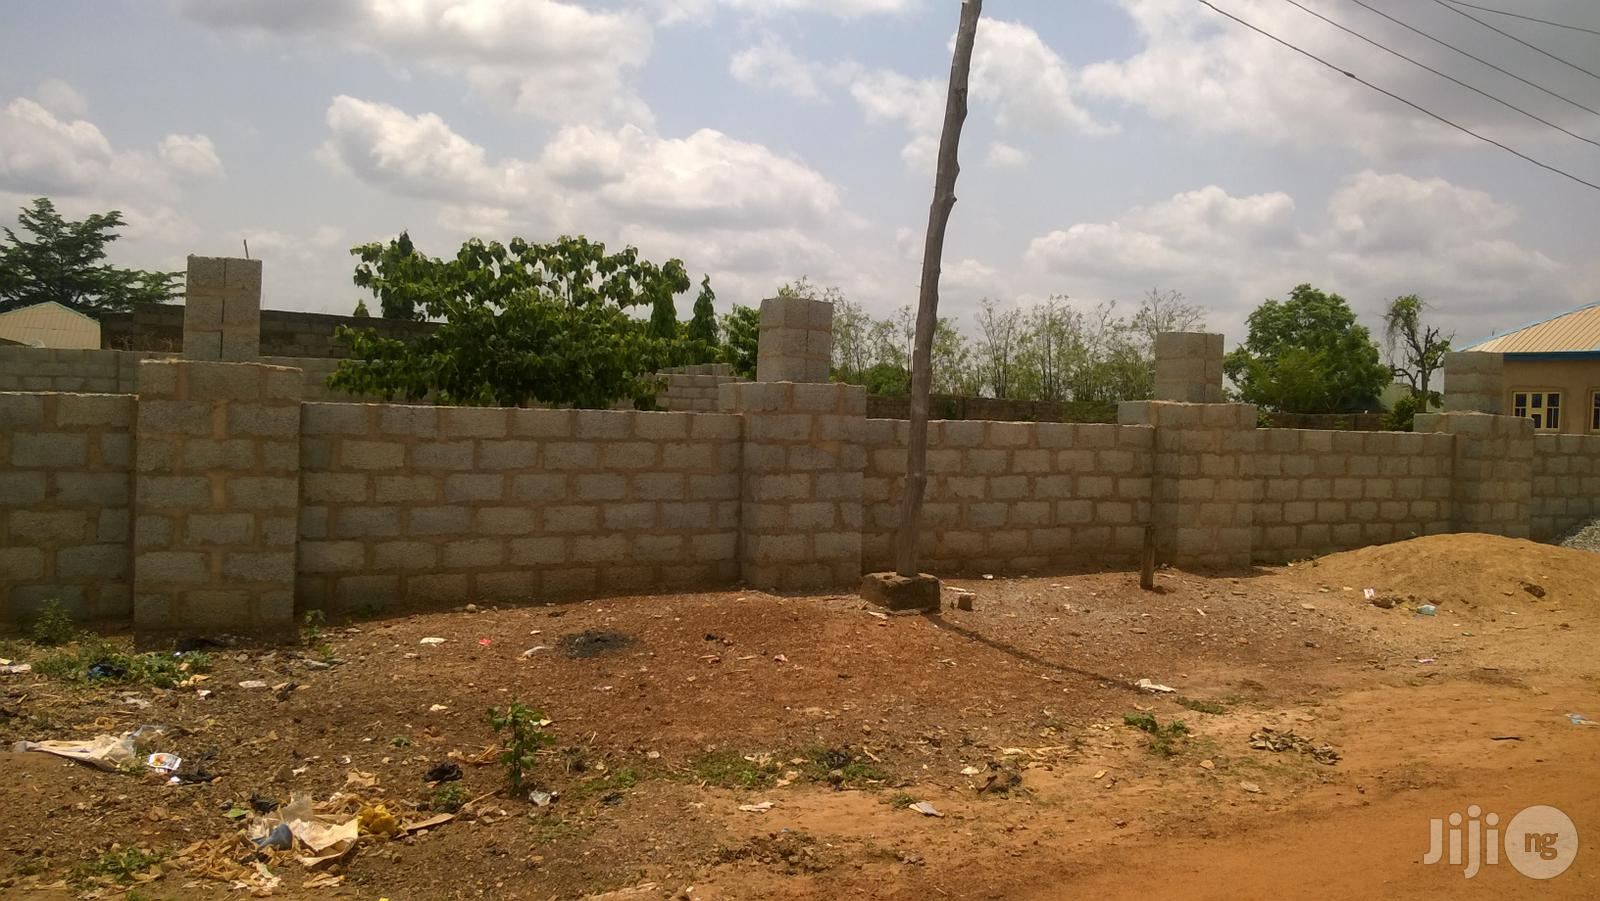 Twin Two Bedroom Flats & 4 1bedroom Flat For Sale | Commercial Property For Sale for sale in Jikwoyi, Abuja (FCT) State, Nigeria